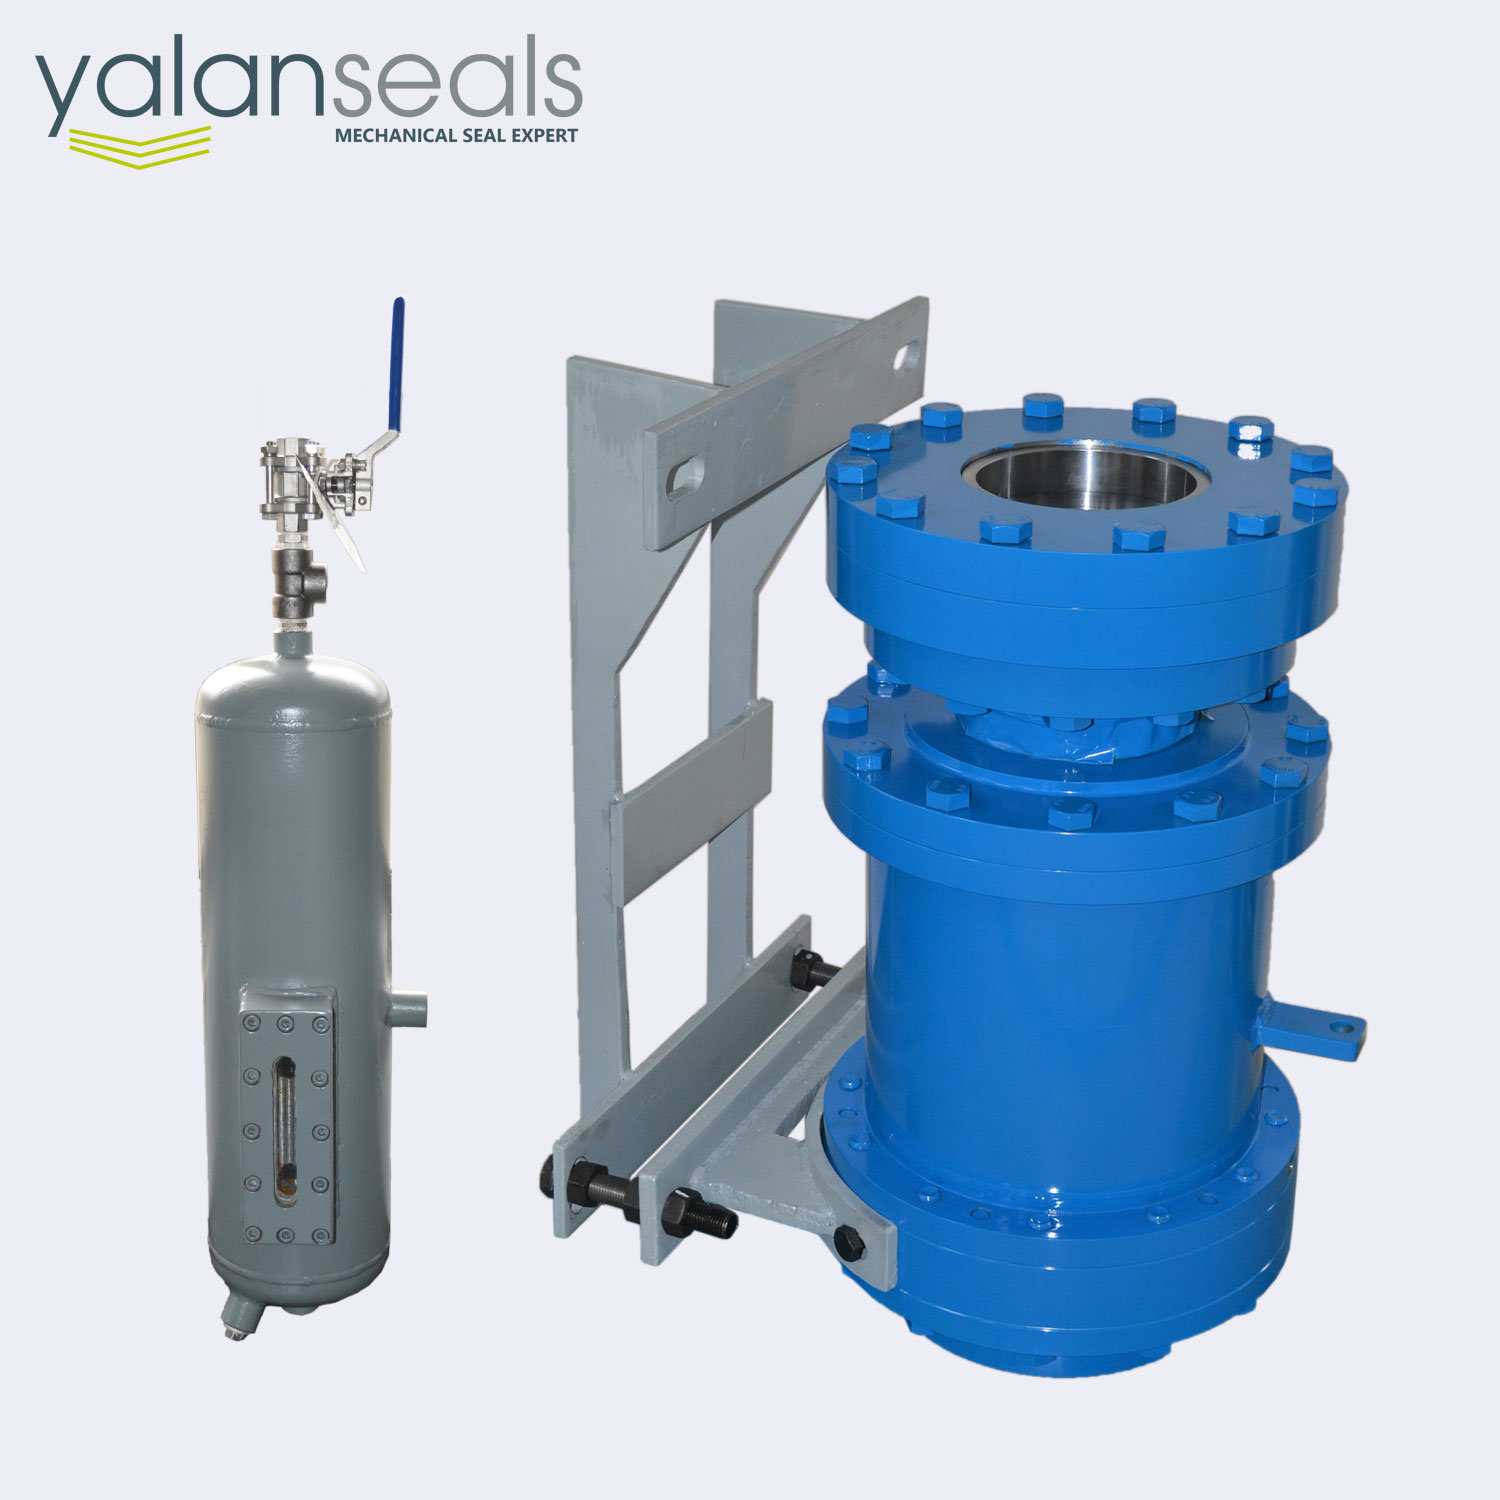 YALAN Customized Design Cartridge Mechanical Seal System for Heavy Duty Top Driven Mixers